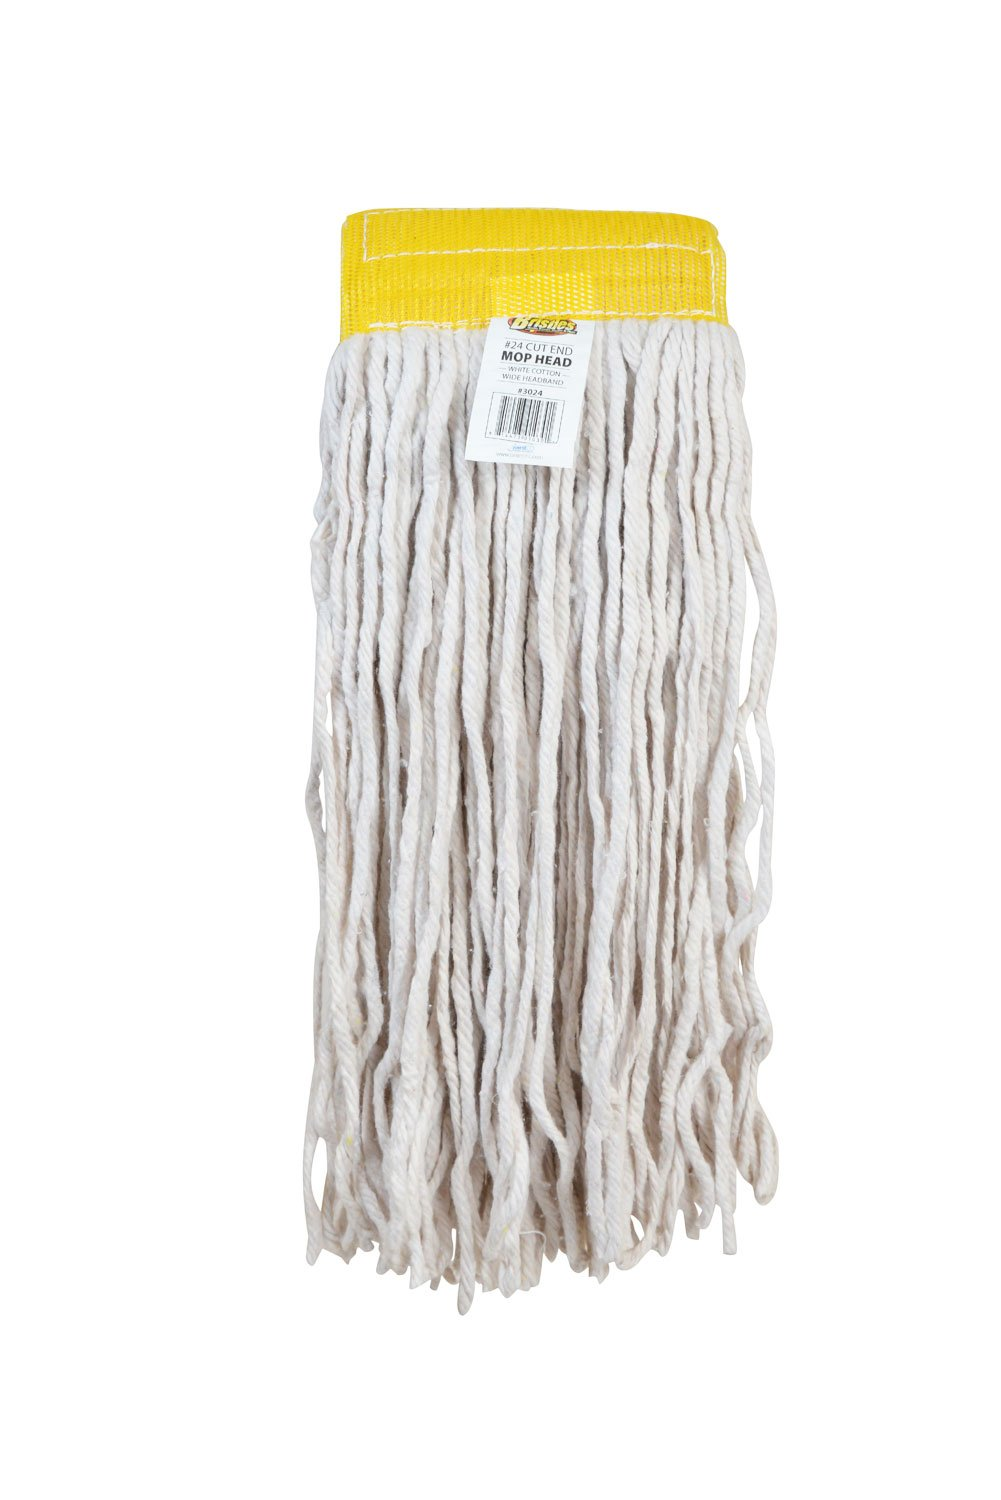 Bristles Wet Cut End Mop Head Replacement, Pack of 12 (24#, White)